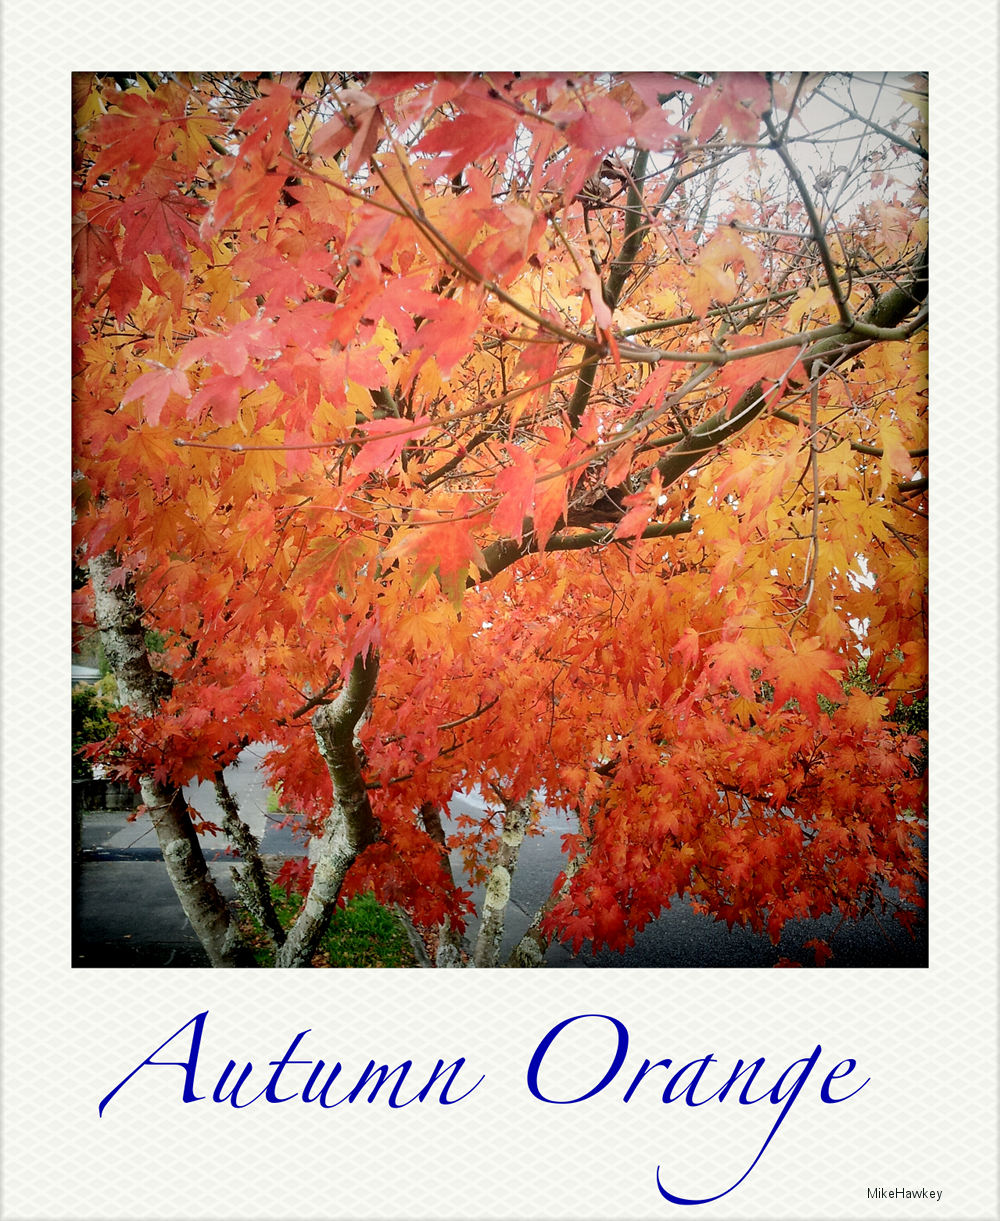 Autumn Orange